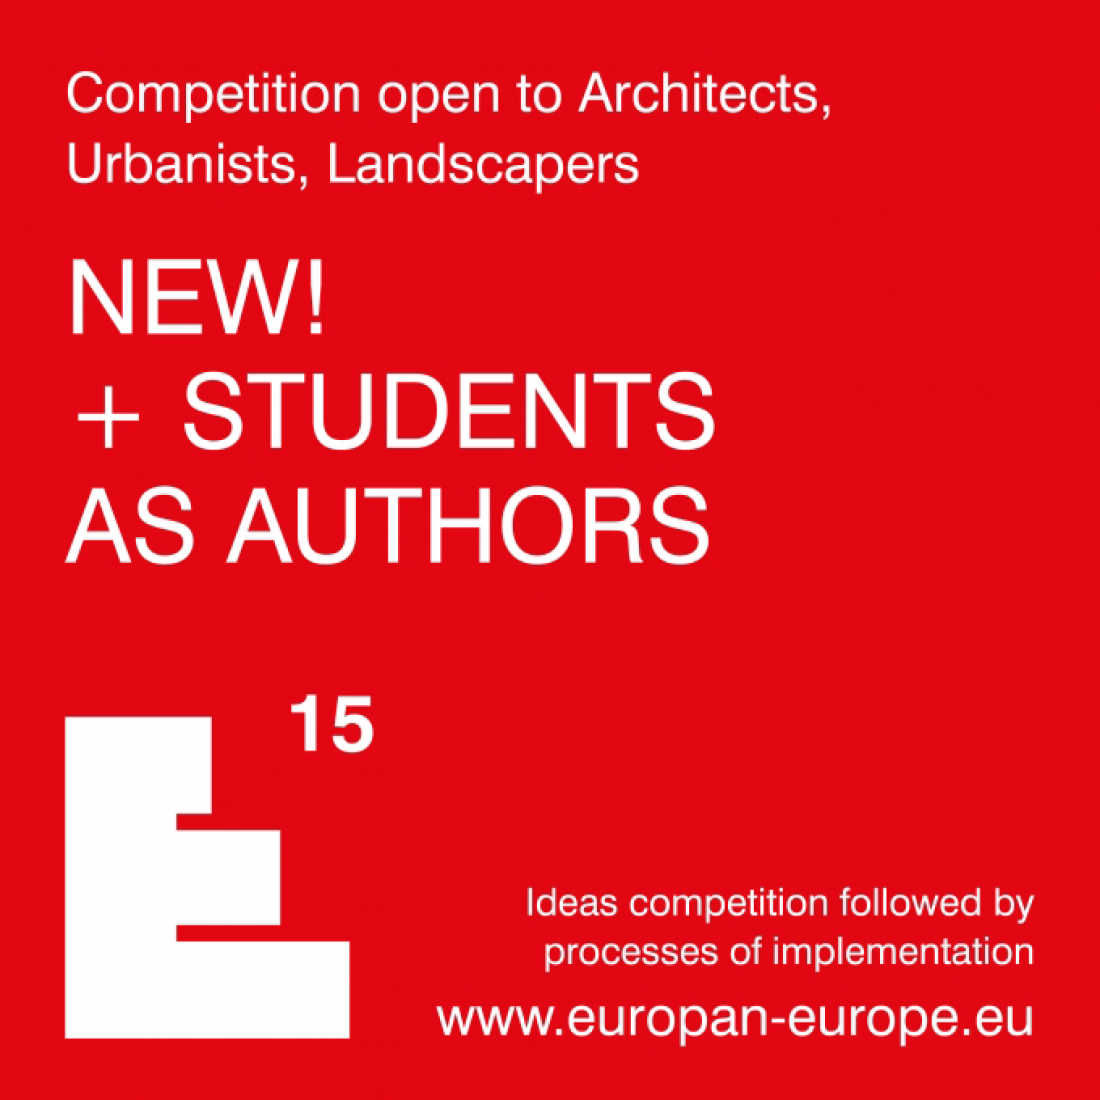 E15 NEW! + Students as authors